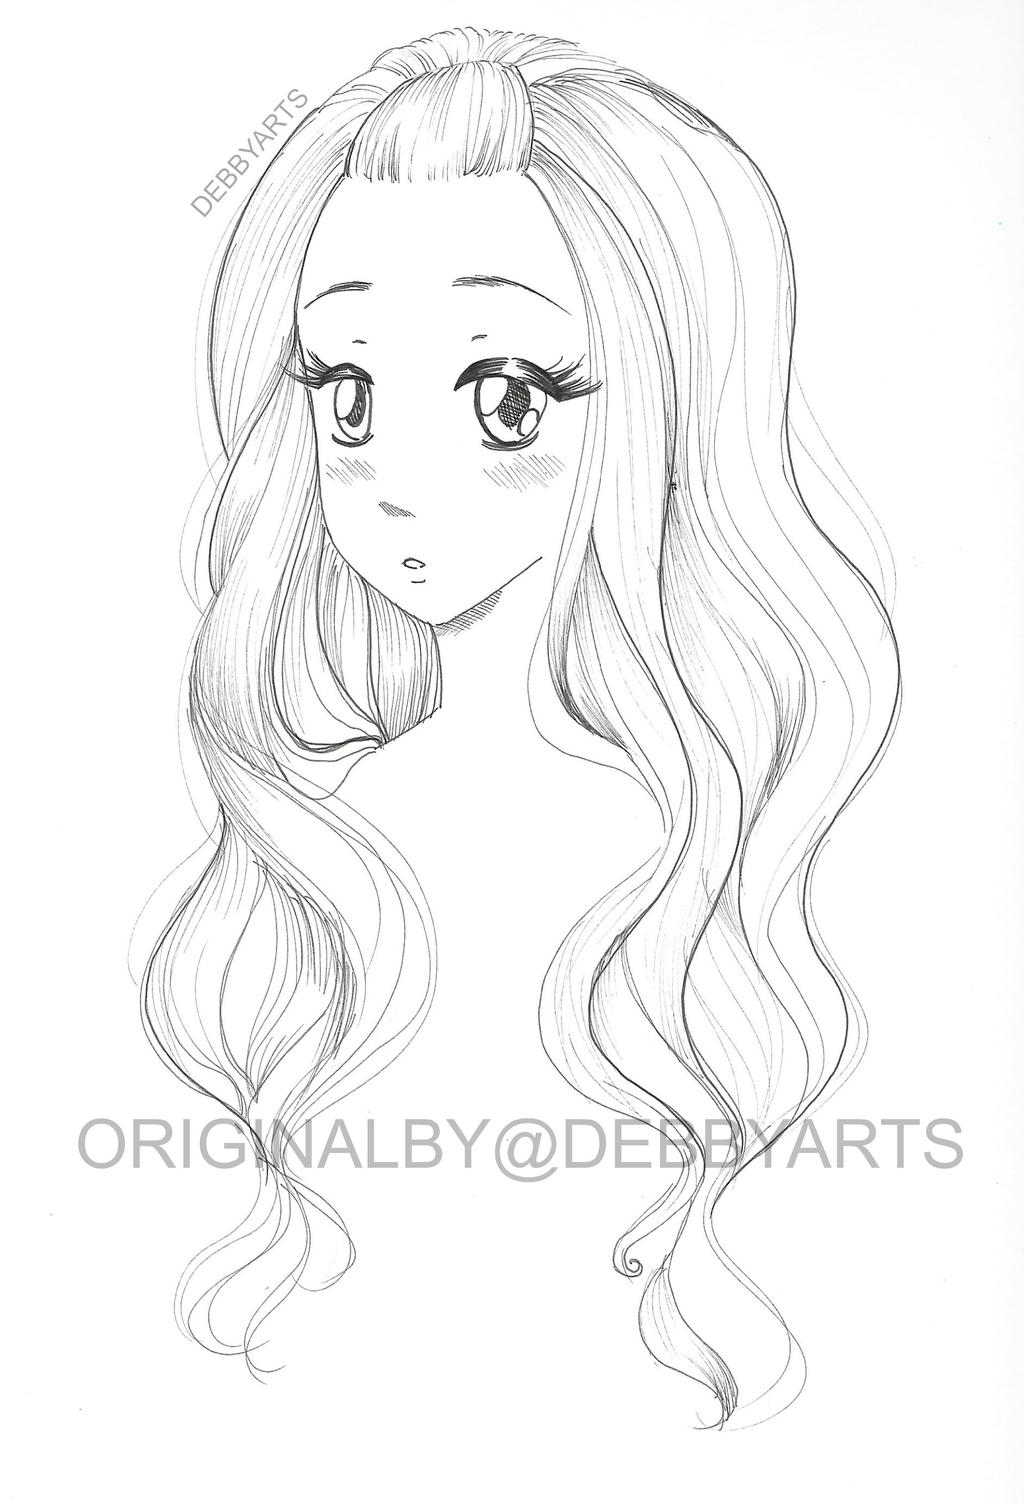 Hair Colouring Drawing - Free Download!!! by DebbyArts on DeviantArt